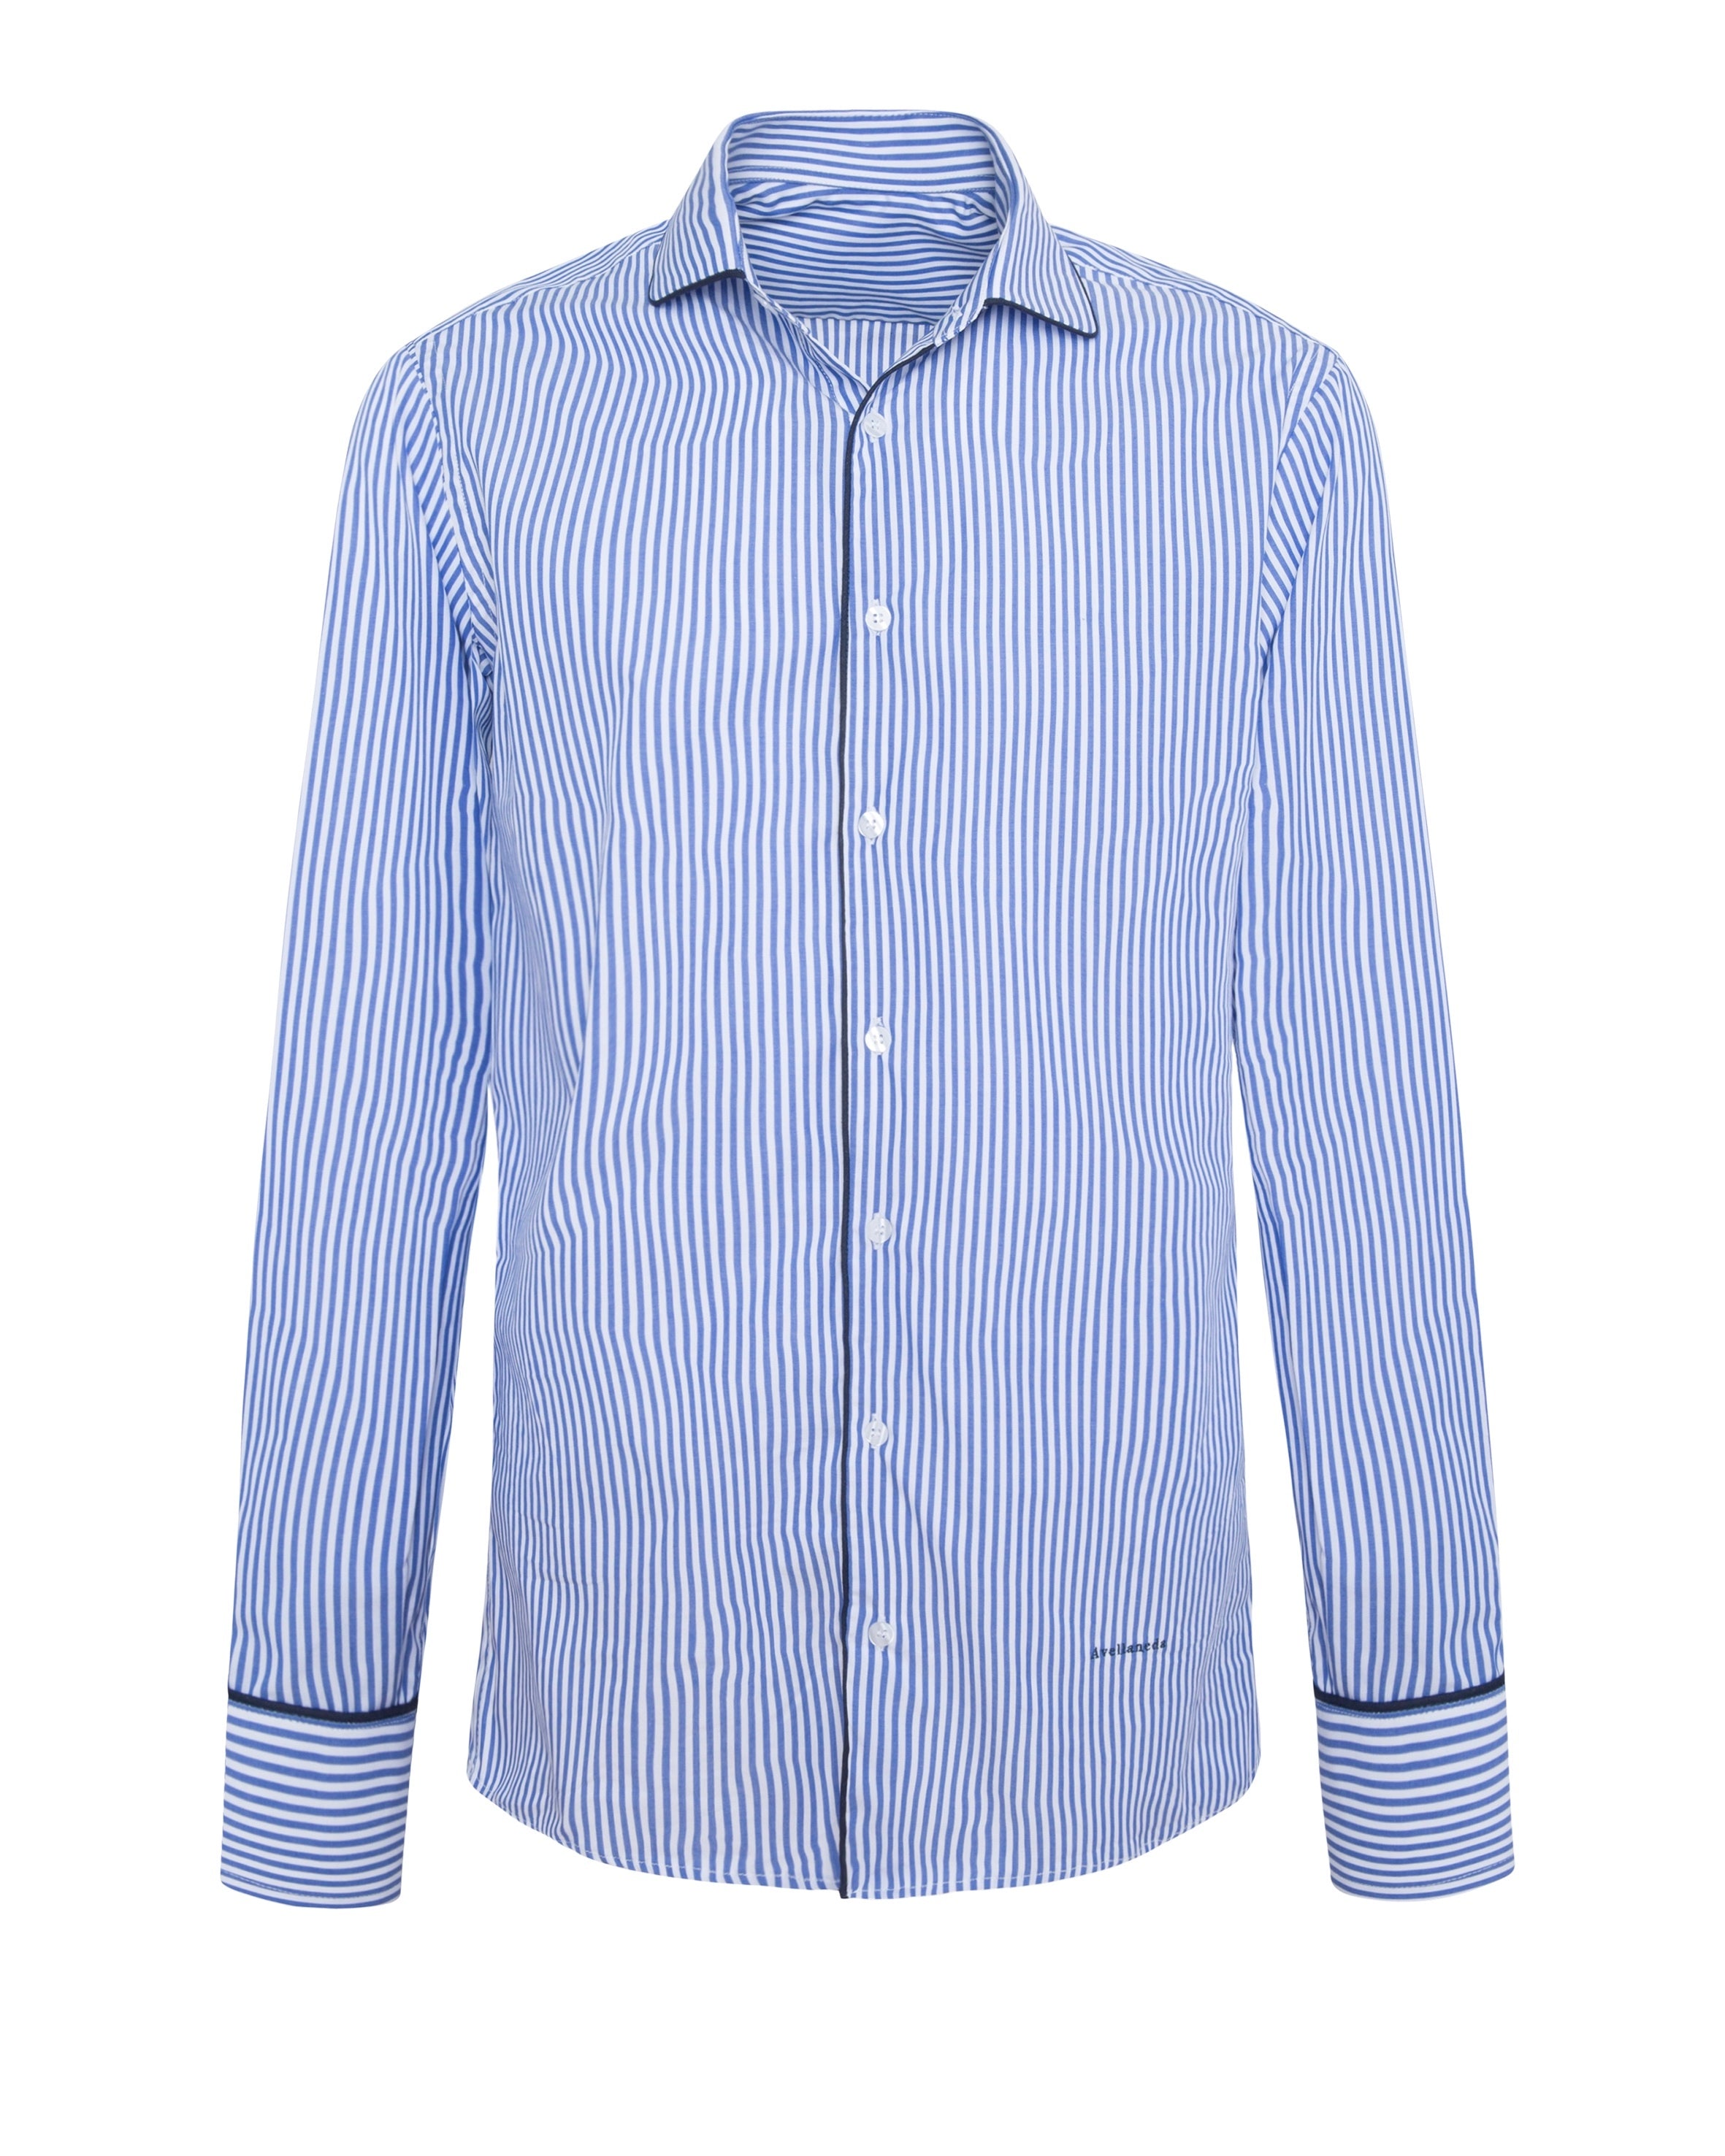 WOMEN'S CLASSIC STRIPED SHIRT